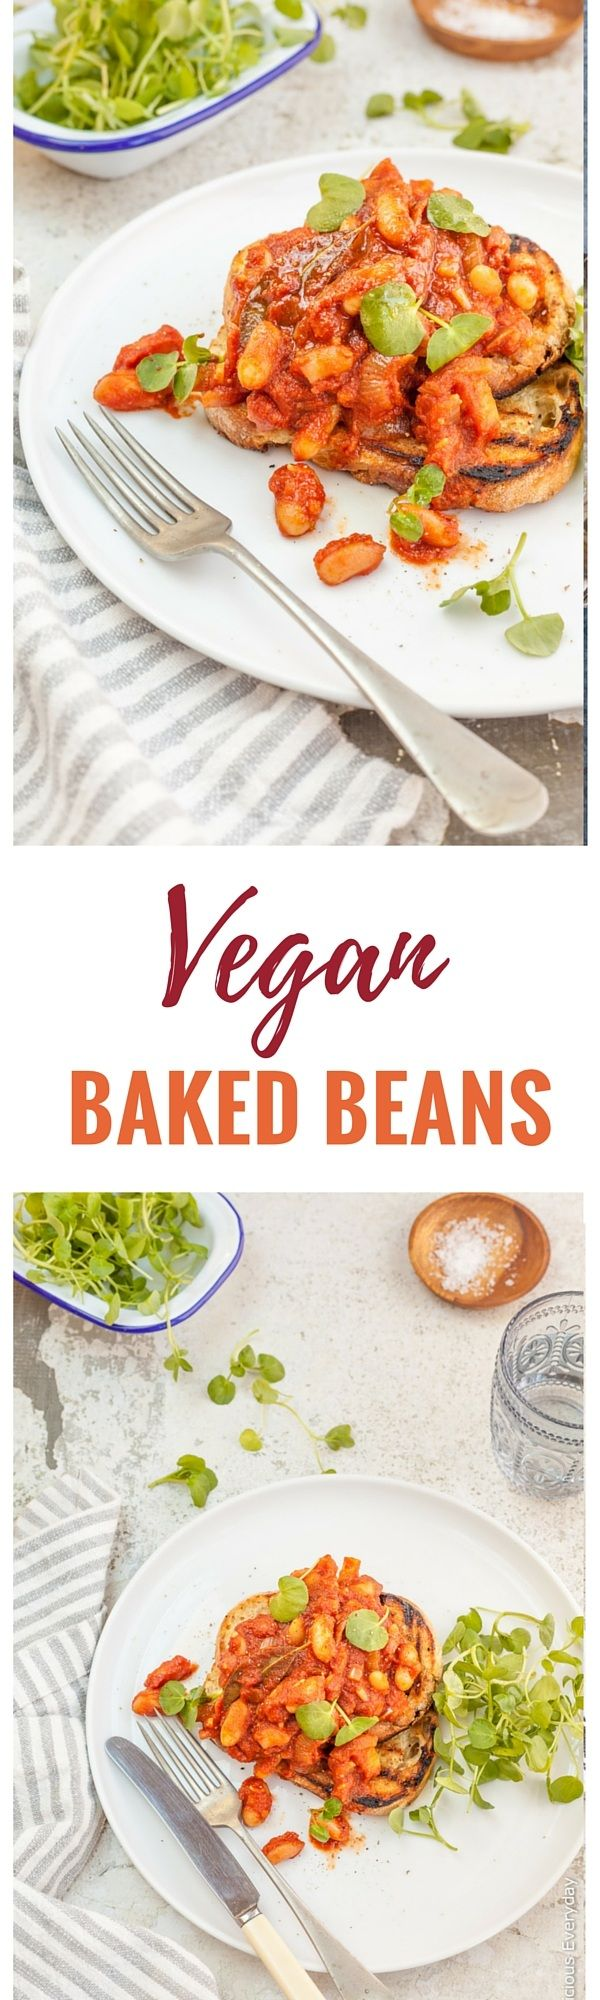 There is nothing quite as comforting as homemade baked beans. This vegan baked beans recipe is rich and smokey and oh so simple to prepare.